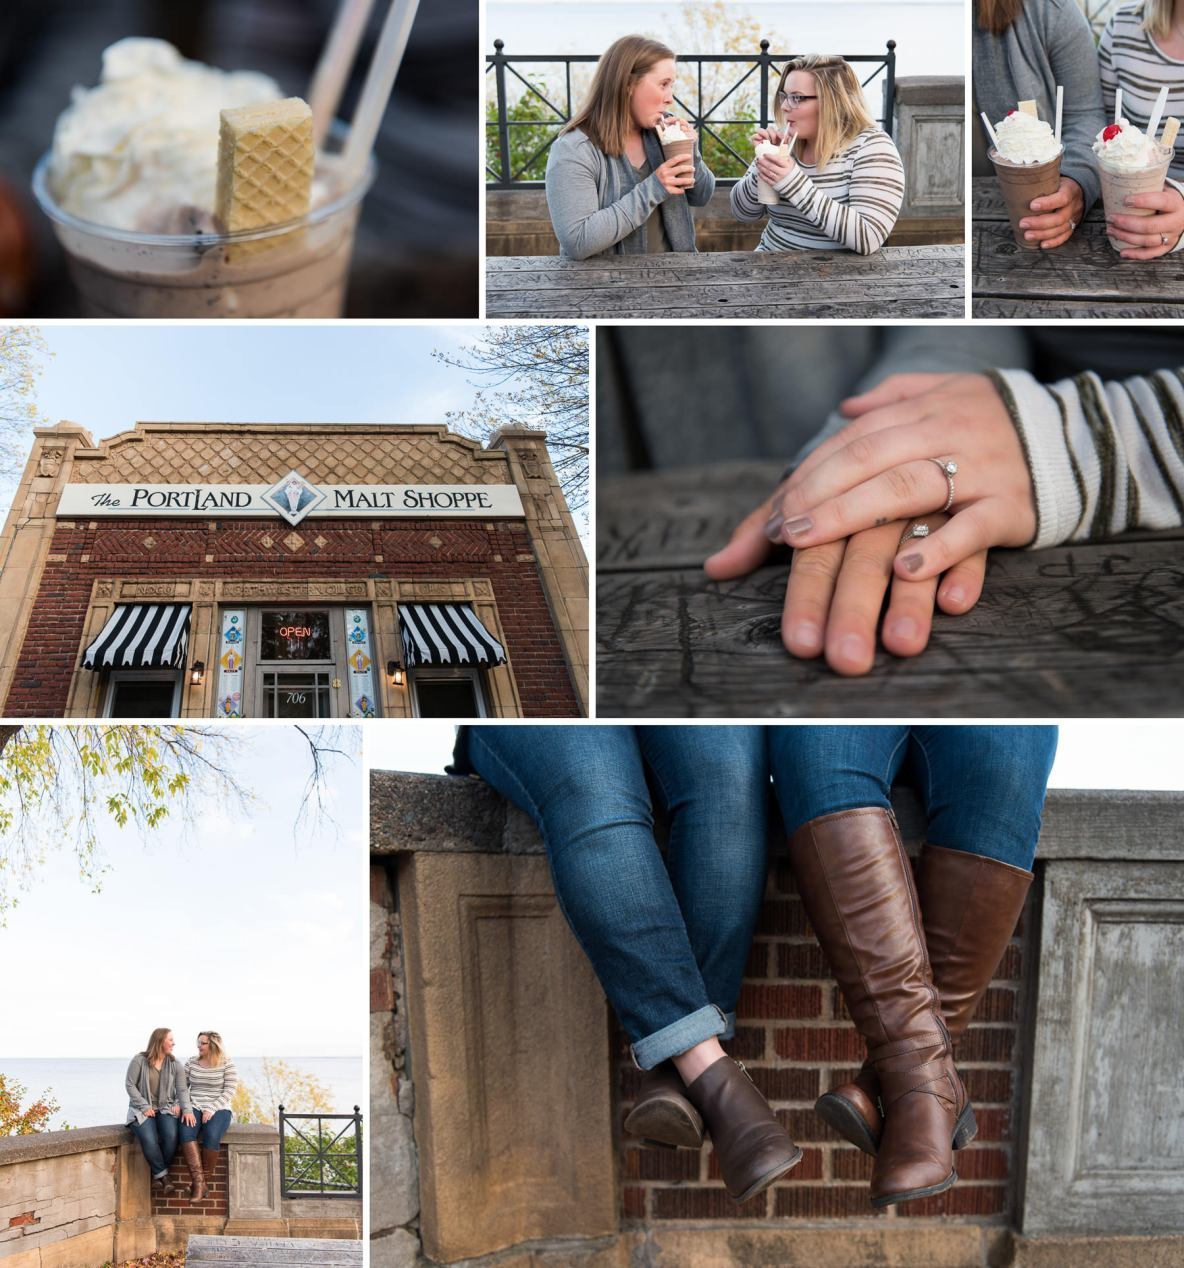 Engagement photos at the Portland Malt Shoppe in Duluth, MN.